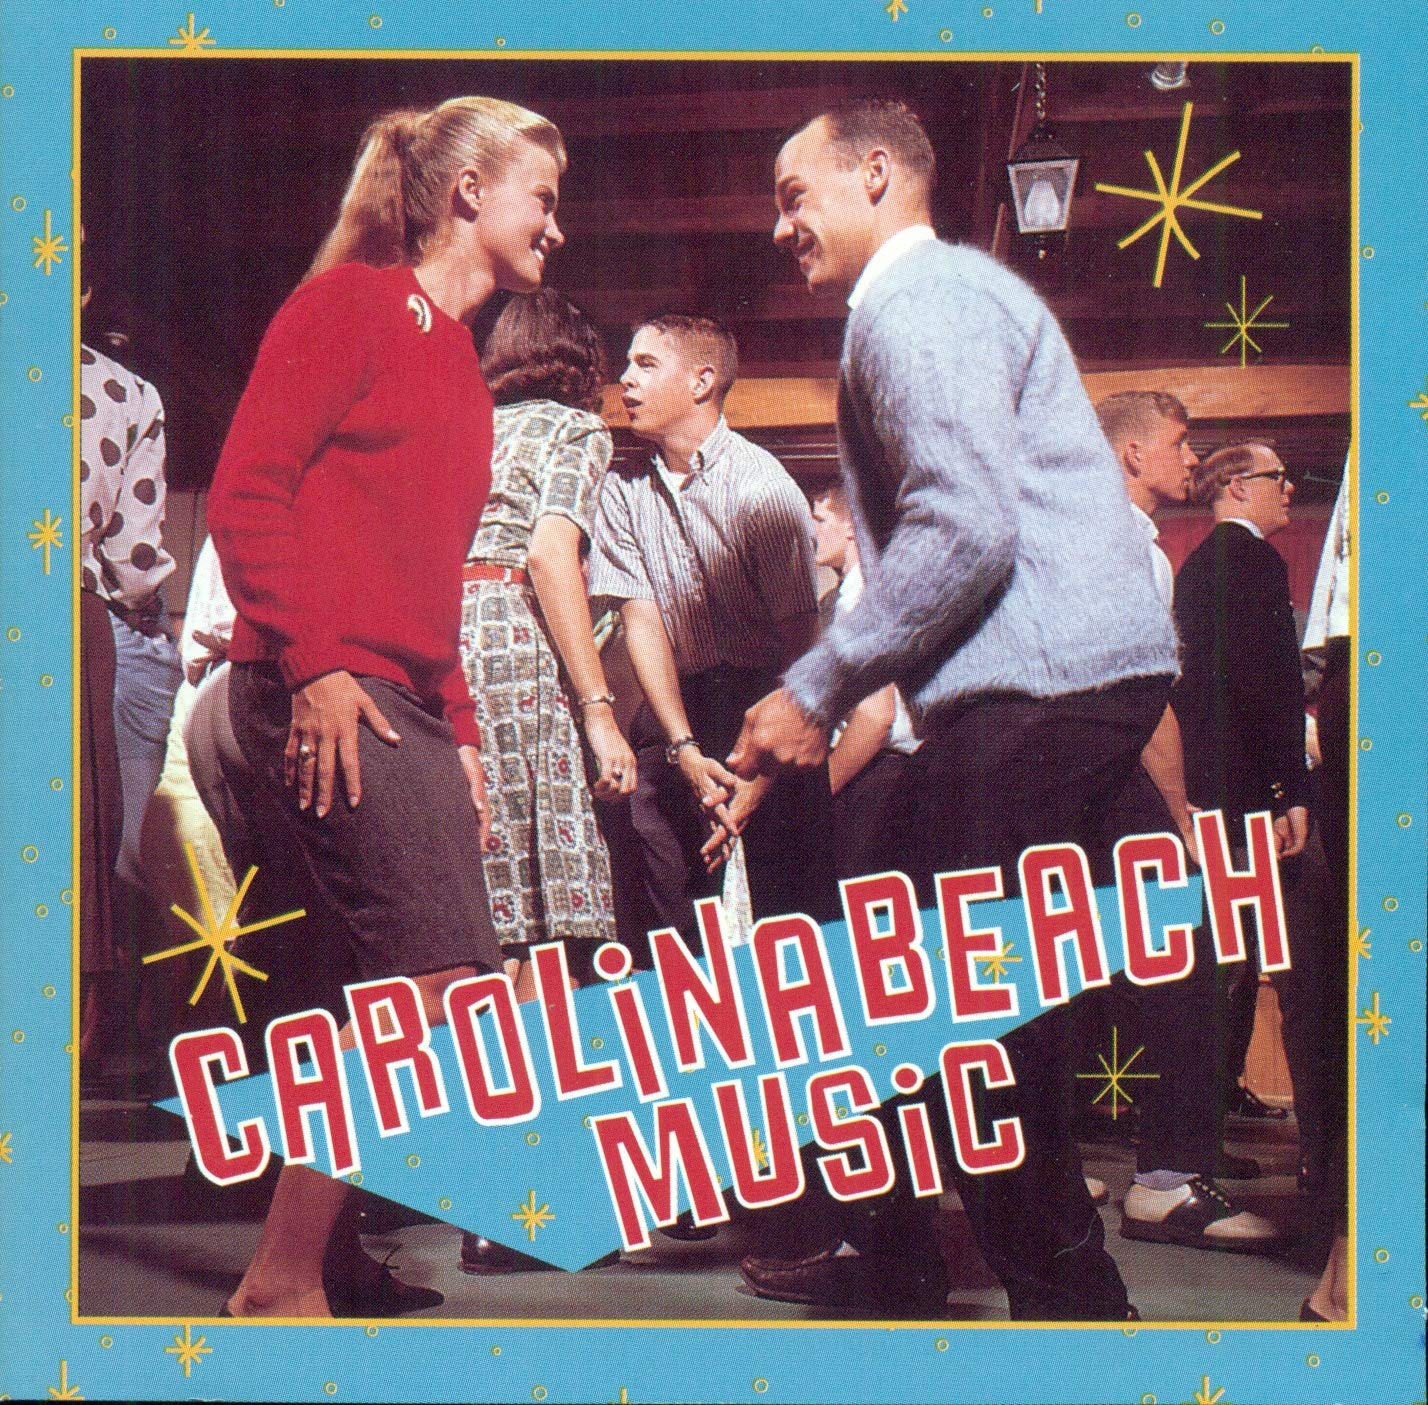 Carolina Beach Music CD.jpg